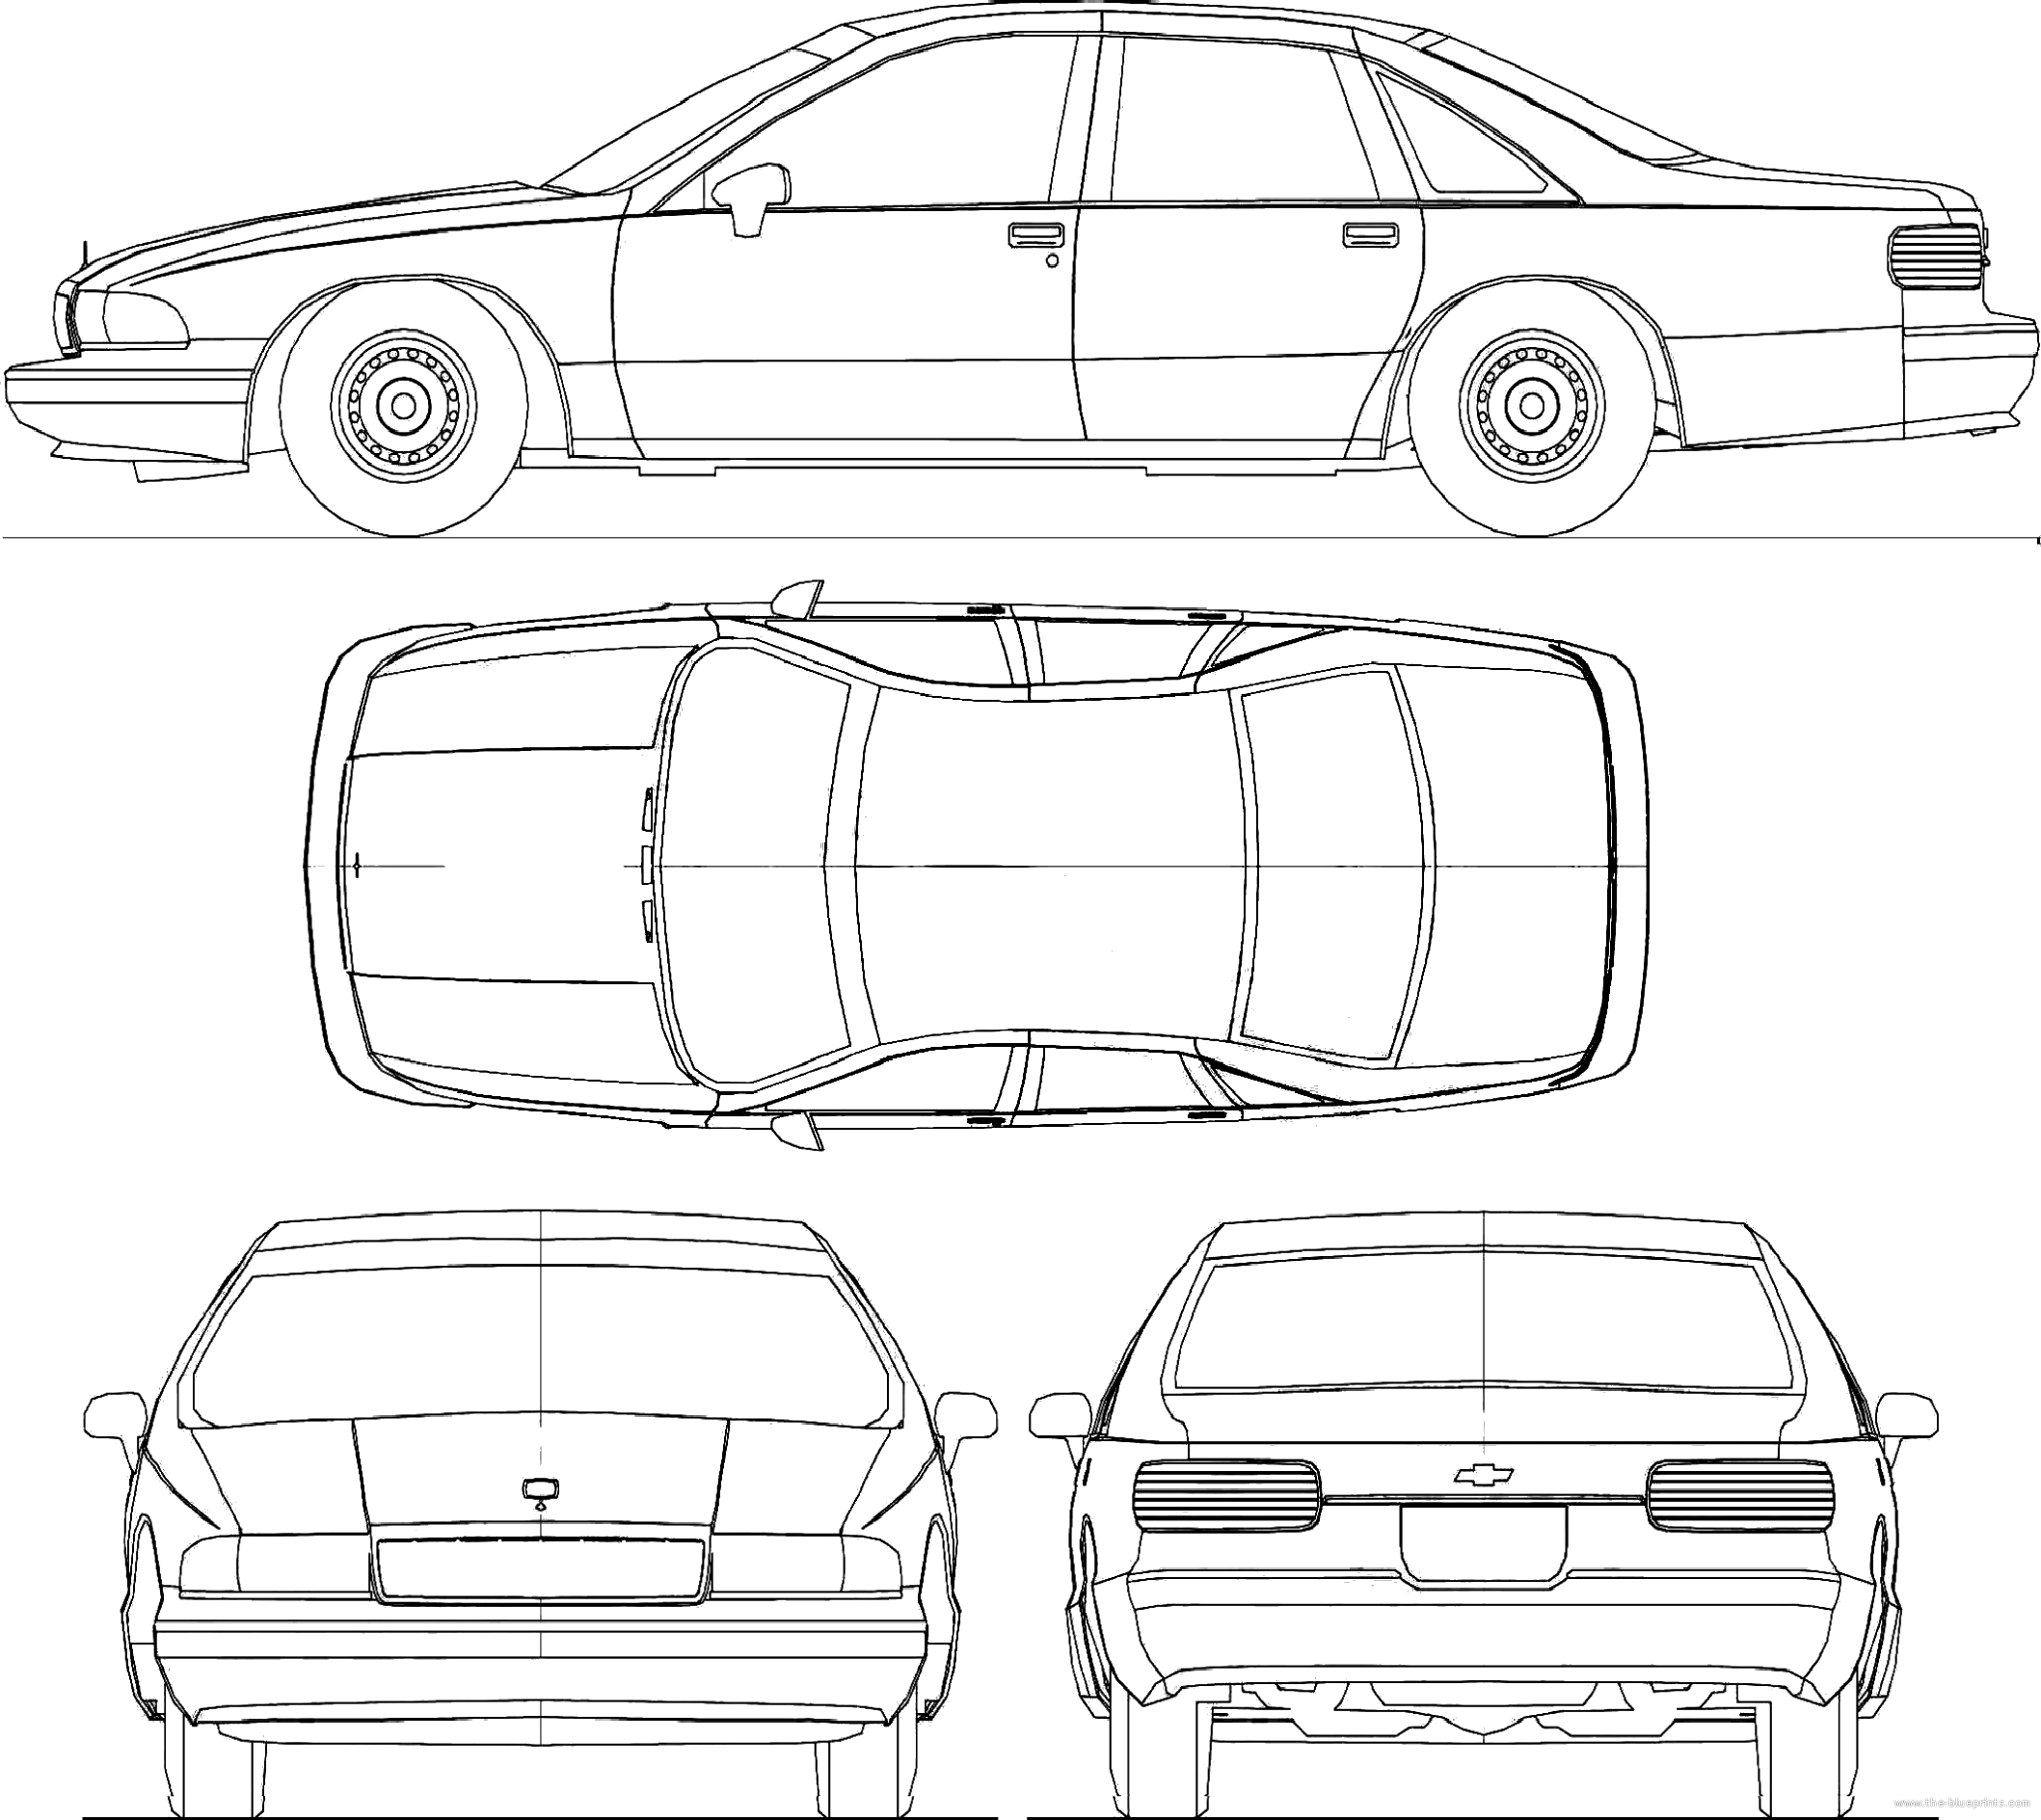 Blueprints Cars Chevrolet